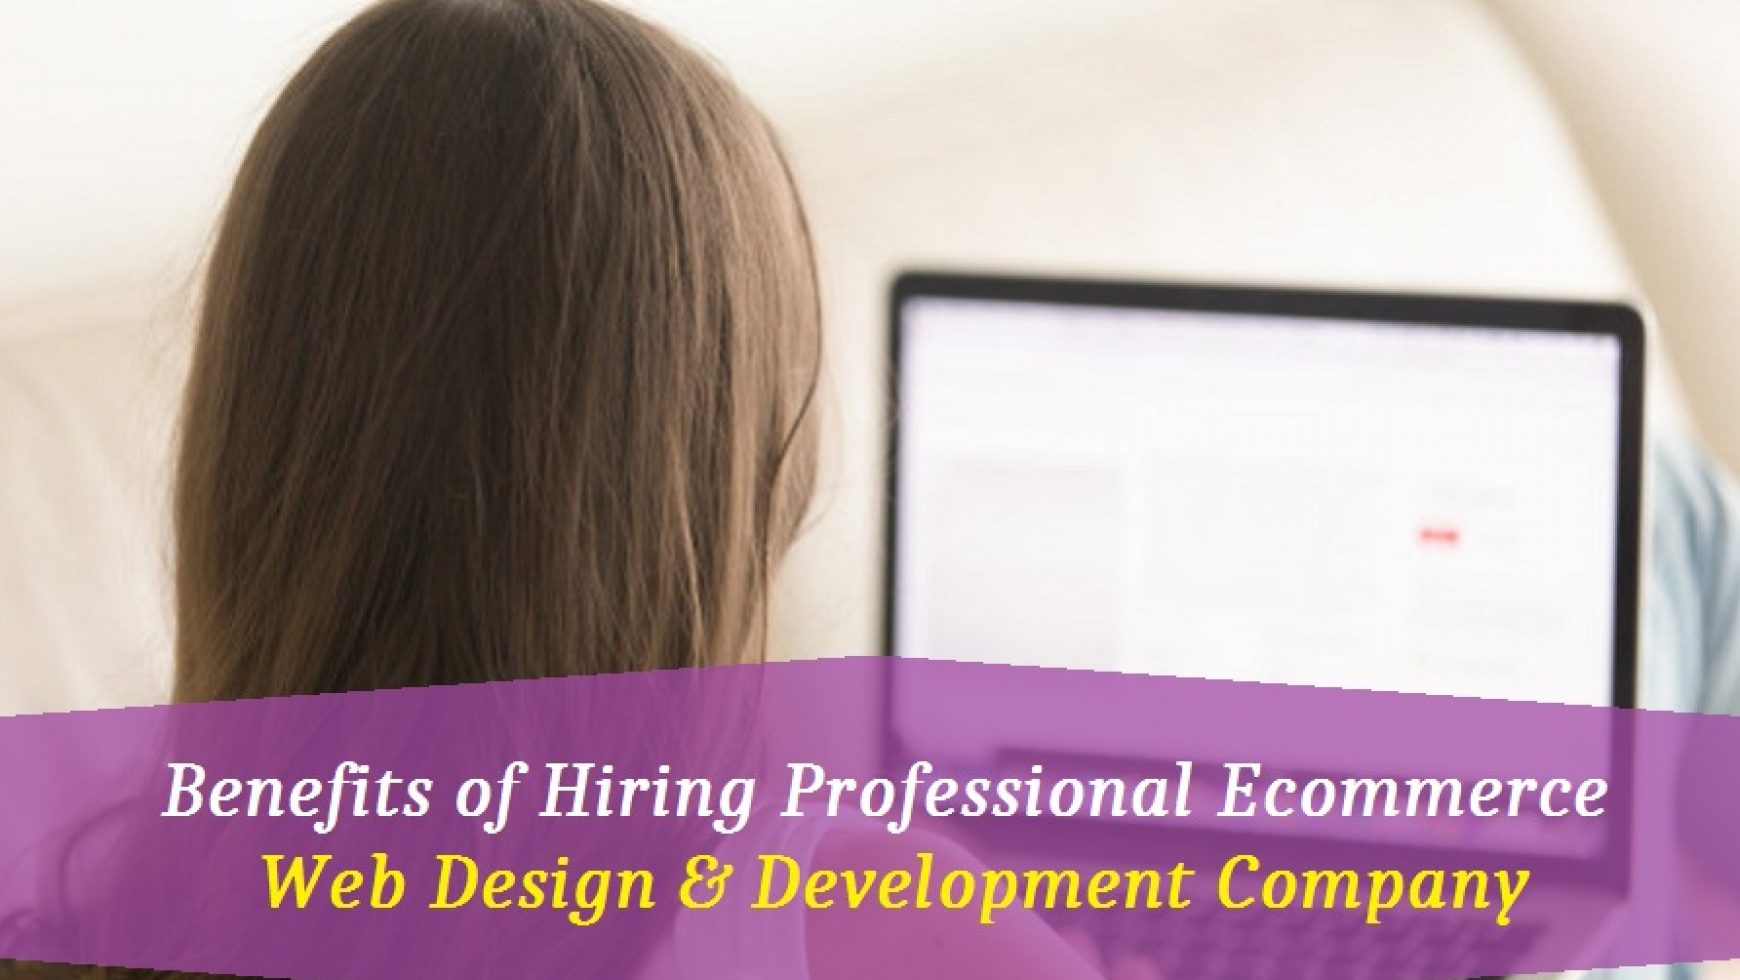 Benefits of Hiring Professional Ecommerce Web Design & Development Company